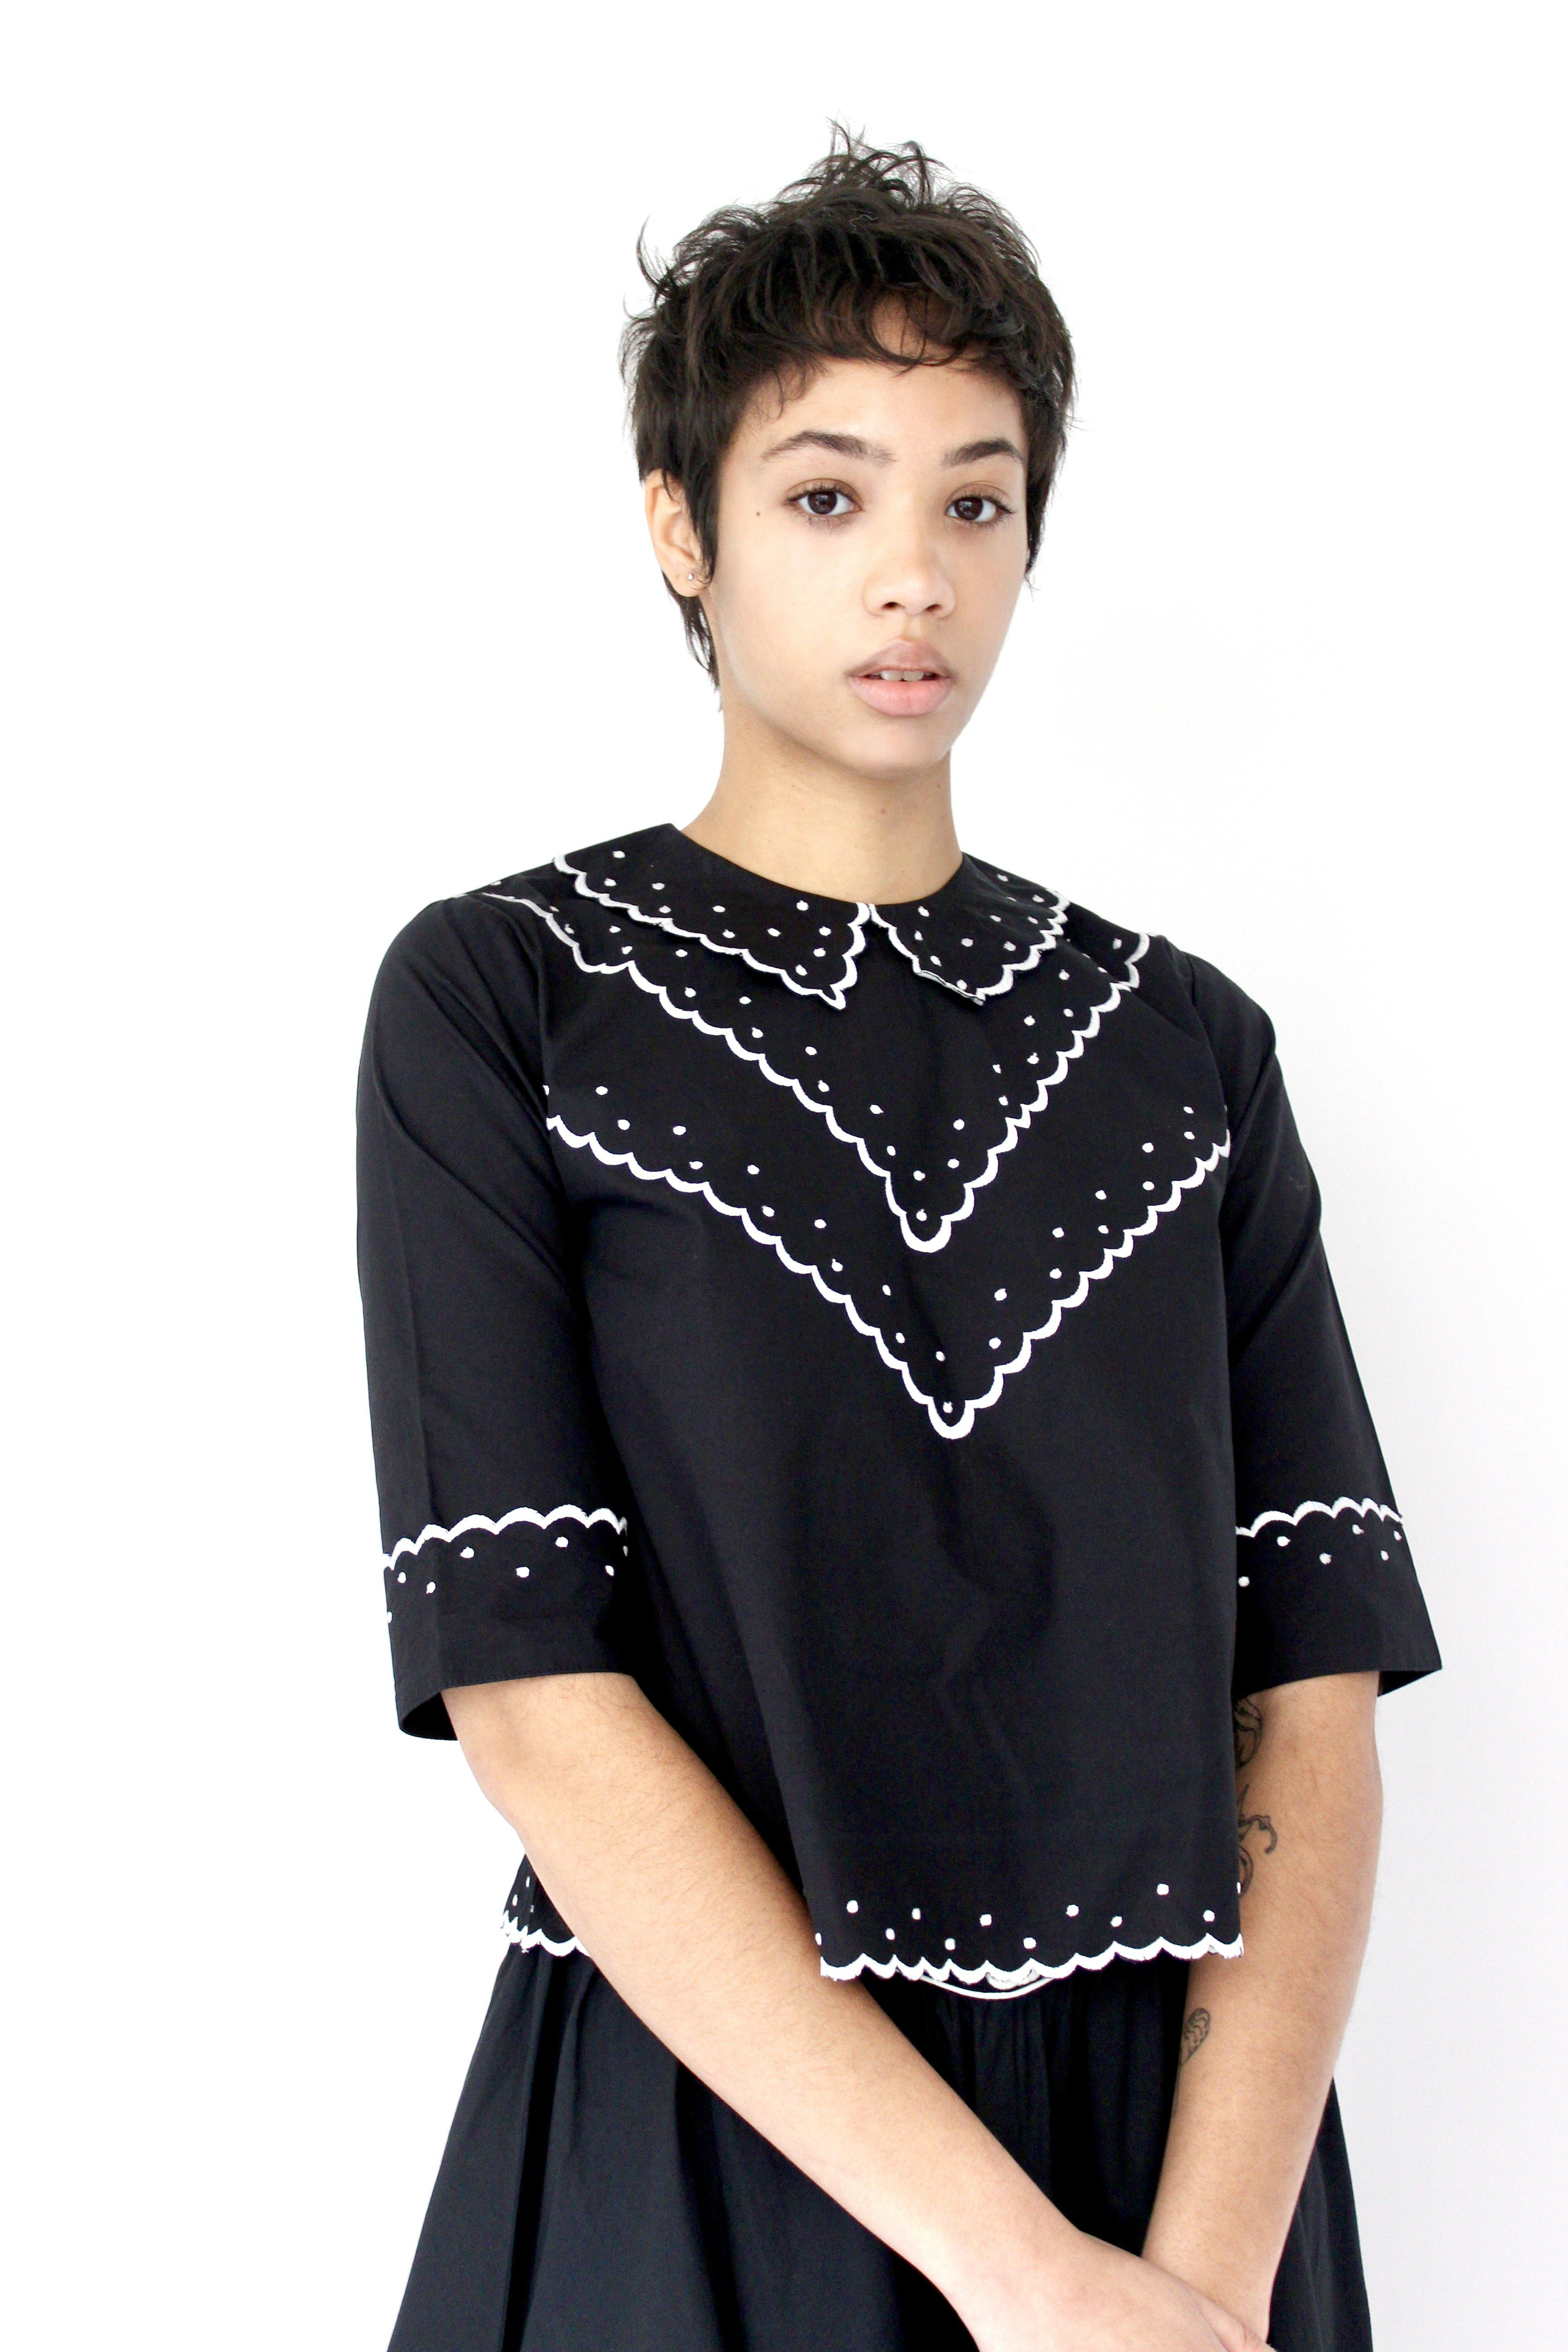 Shirley Blouse in Black with Cream Embroidery